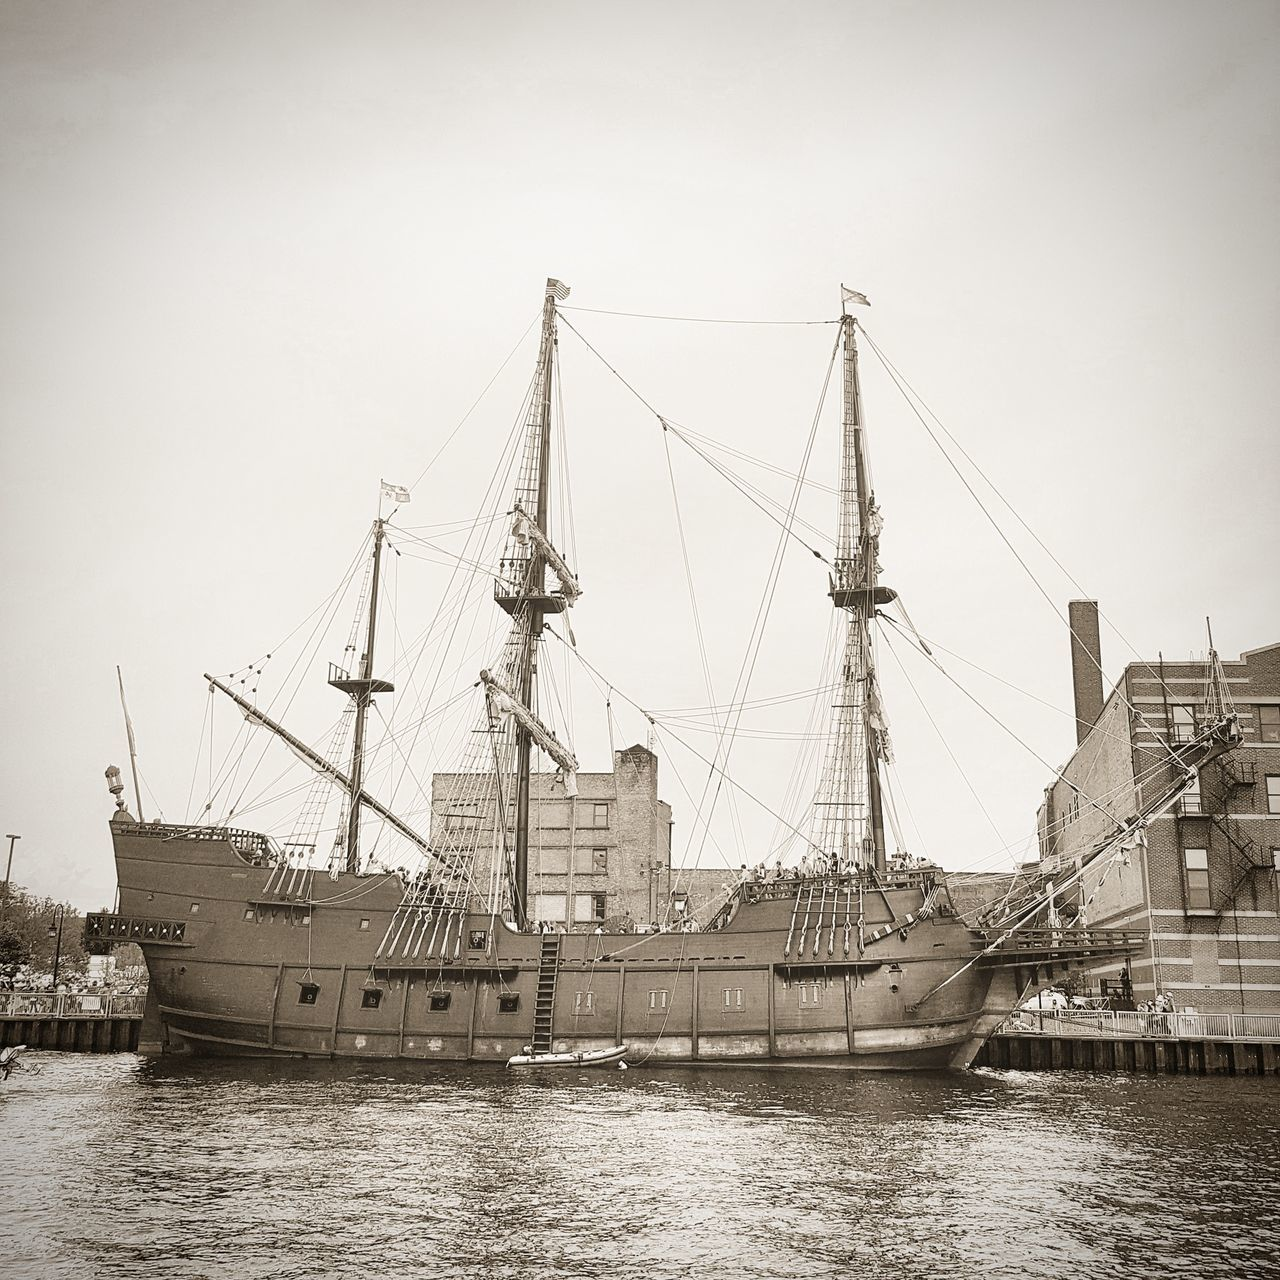 Architecture Boat Day Harbor No People Old Boat Outdoors Sail Boat Sky Tall Ships Transportation Water Wooden Boat